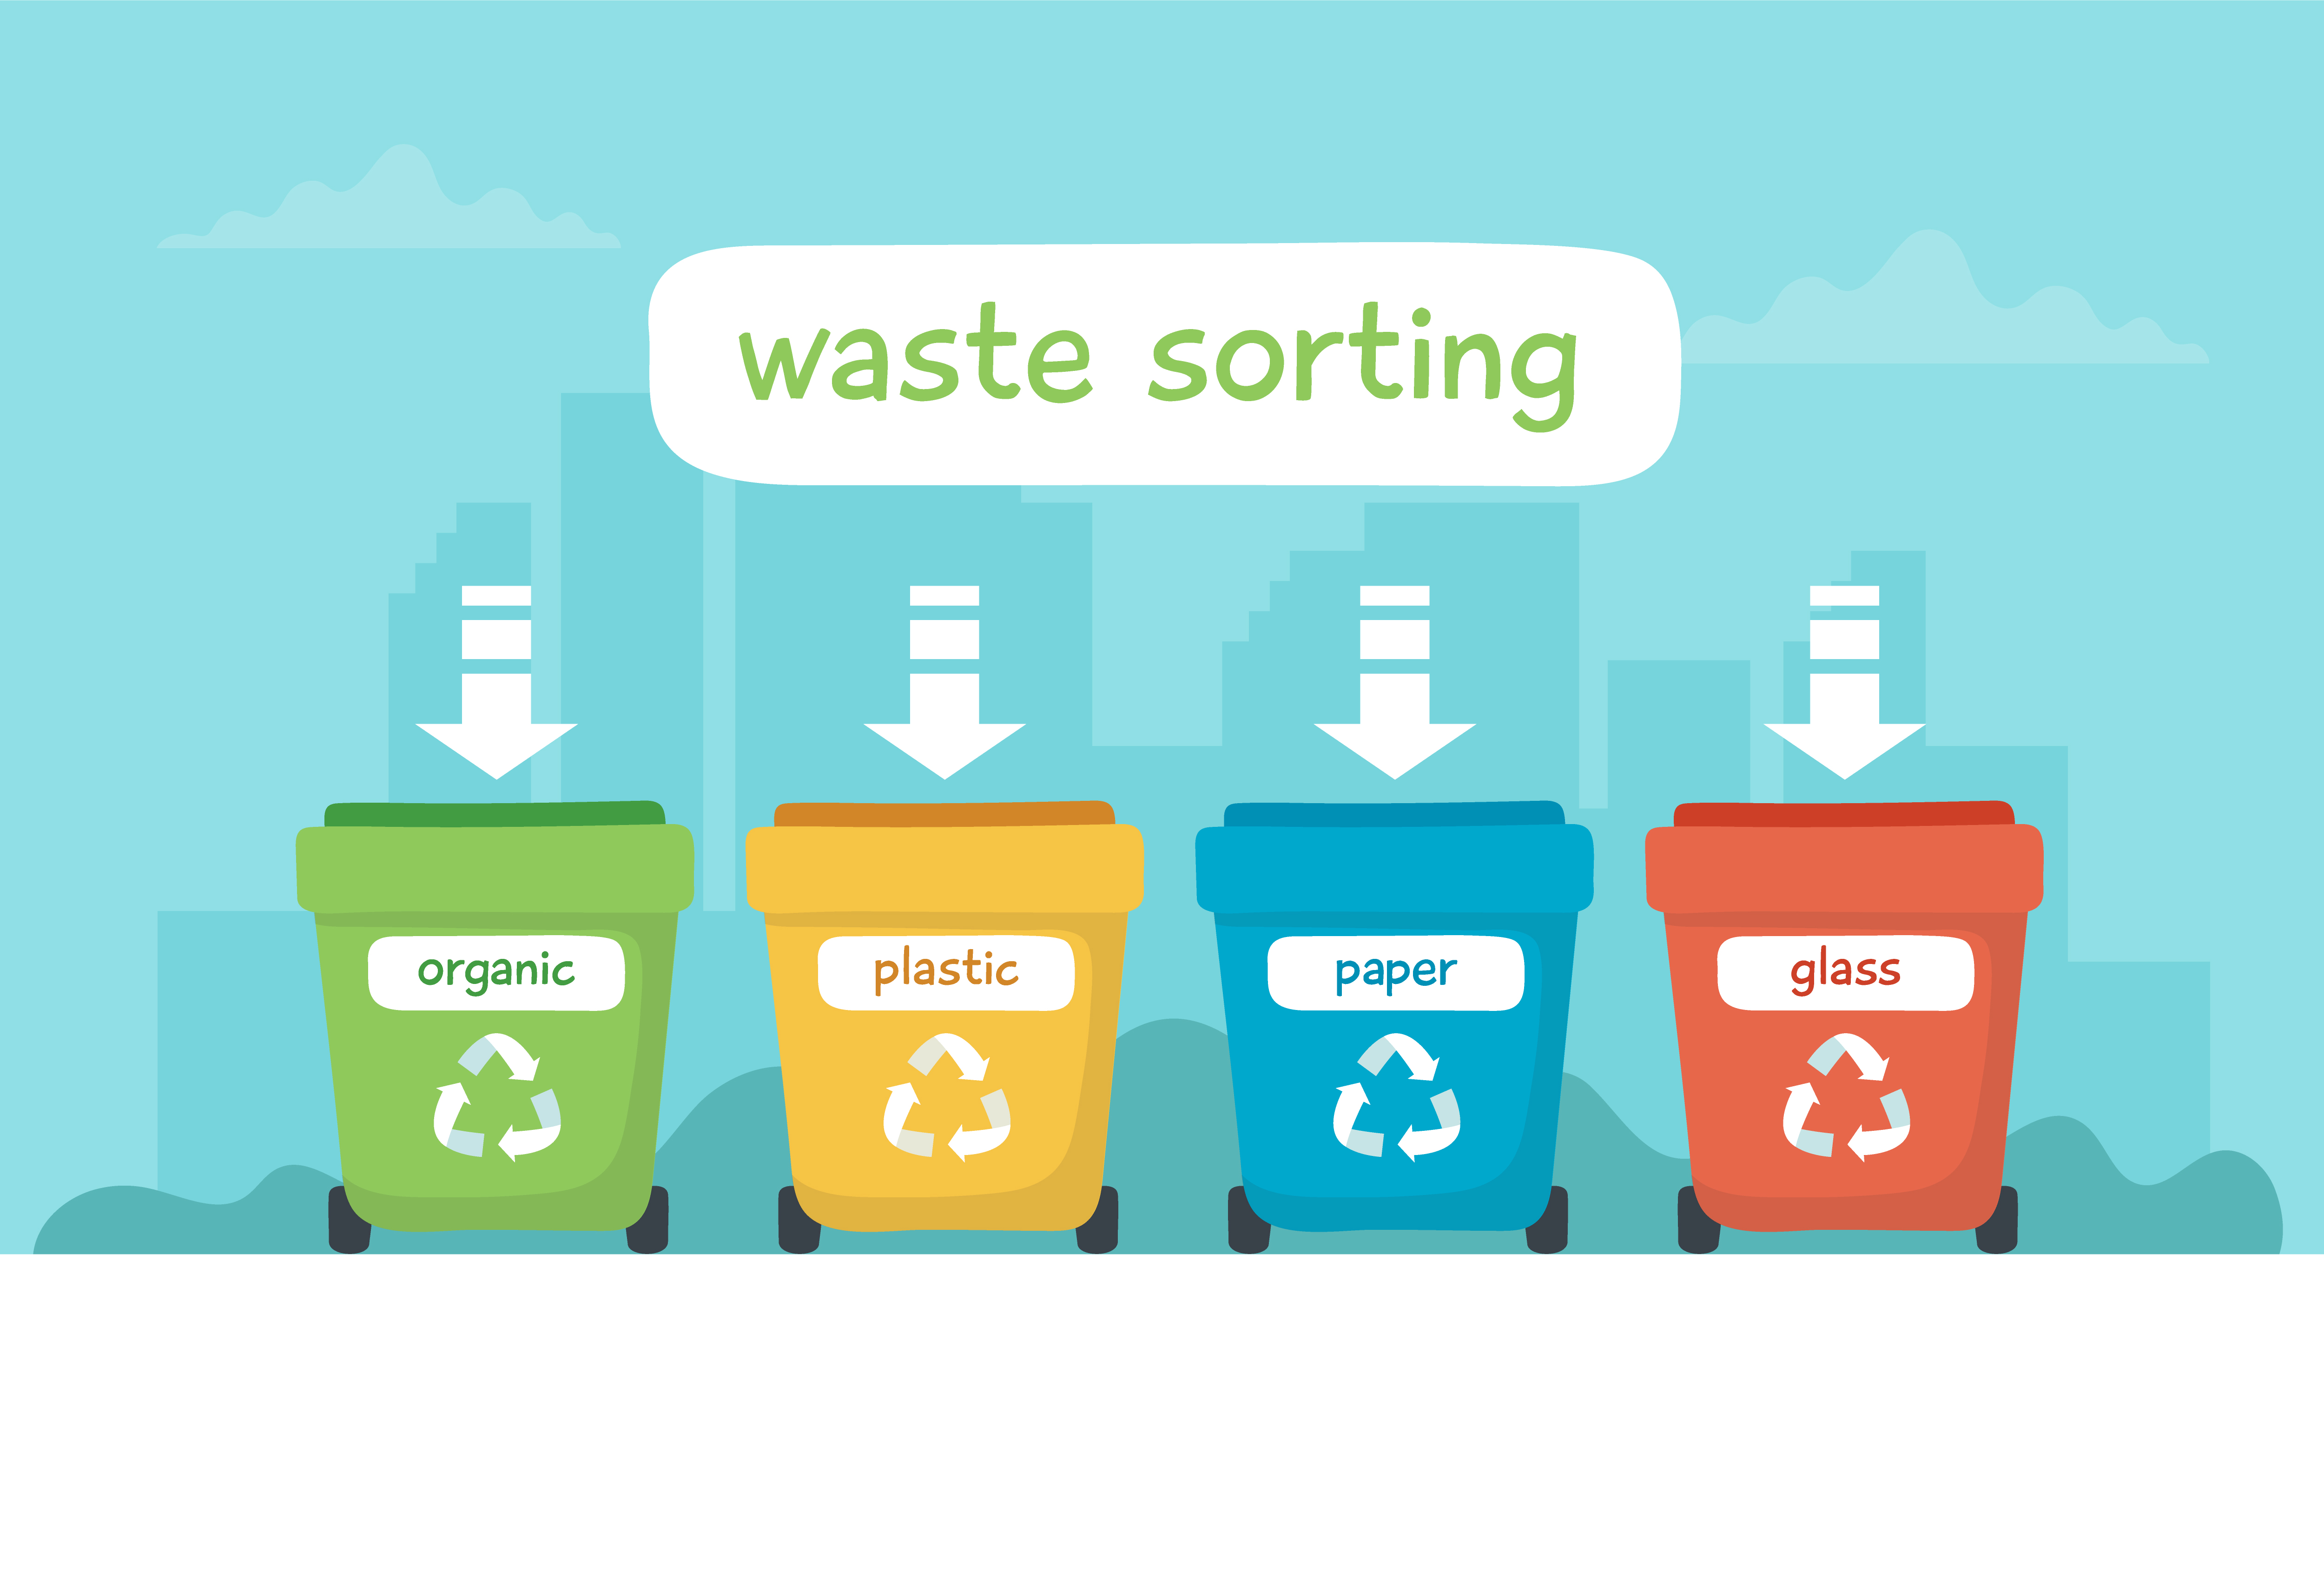 Waste Sorting Illustration With Different Colorful Garbage Bins With Lettering Recycling Sustainability Download Free Vectors Clipart Graphics Vector Art